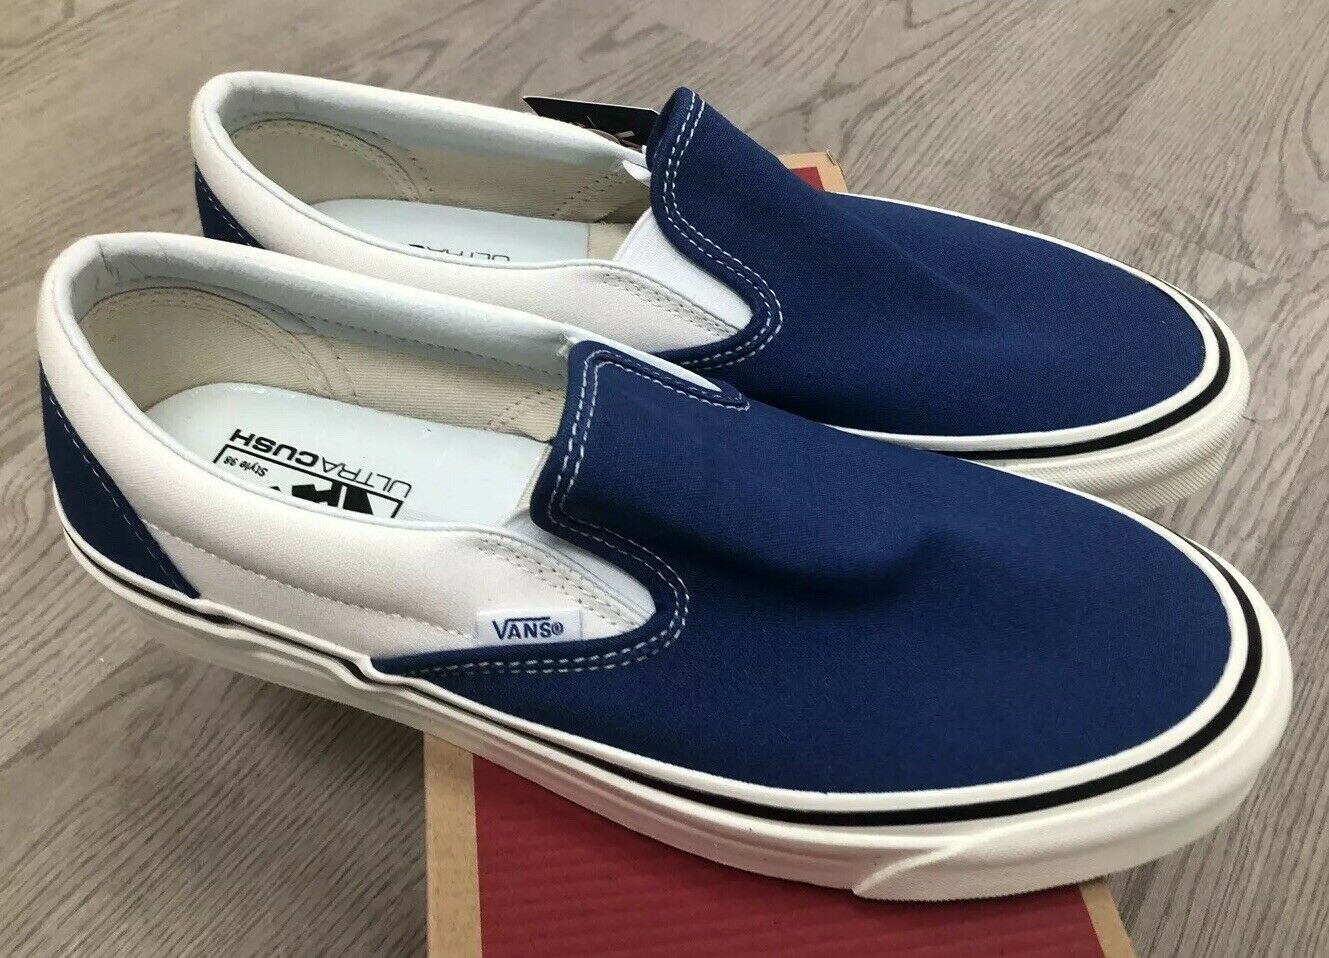 Vans without laces classic 9 Anaheim Factory og azul Talla 11 nib